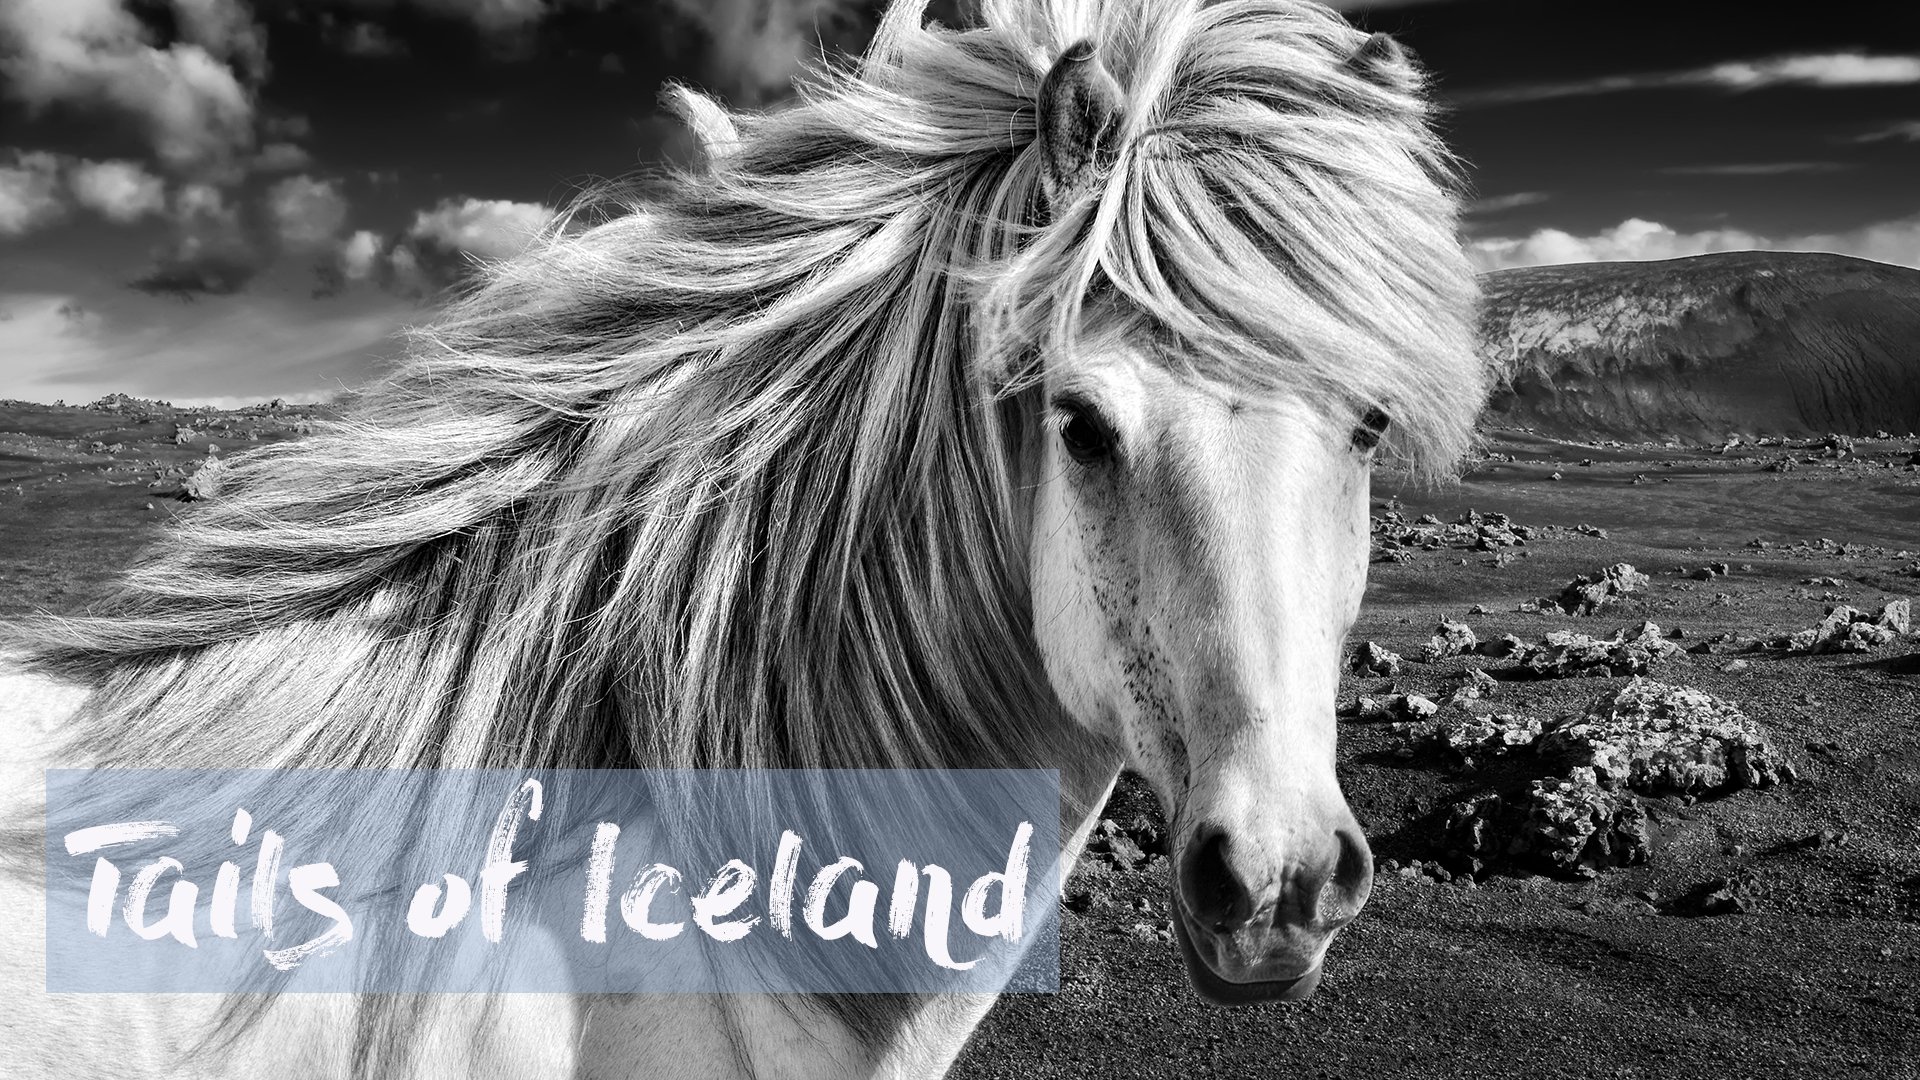 Tails of Iceland